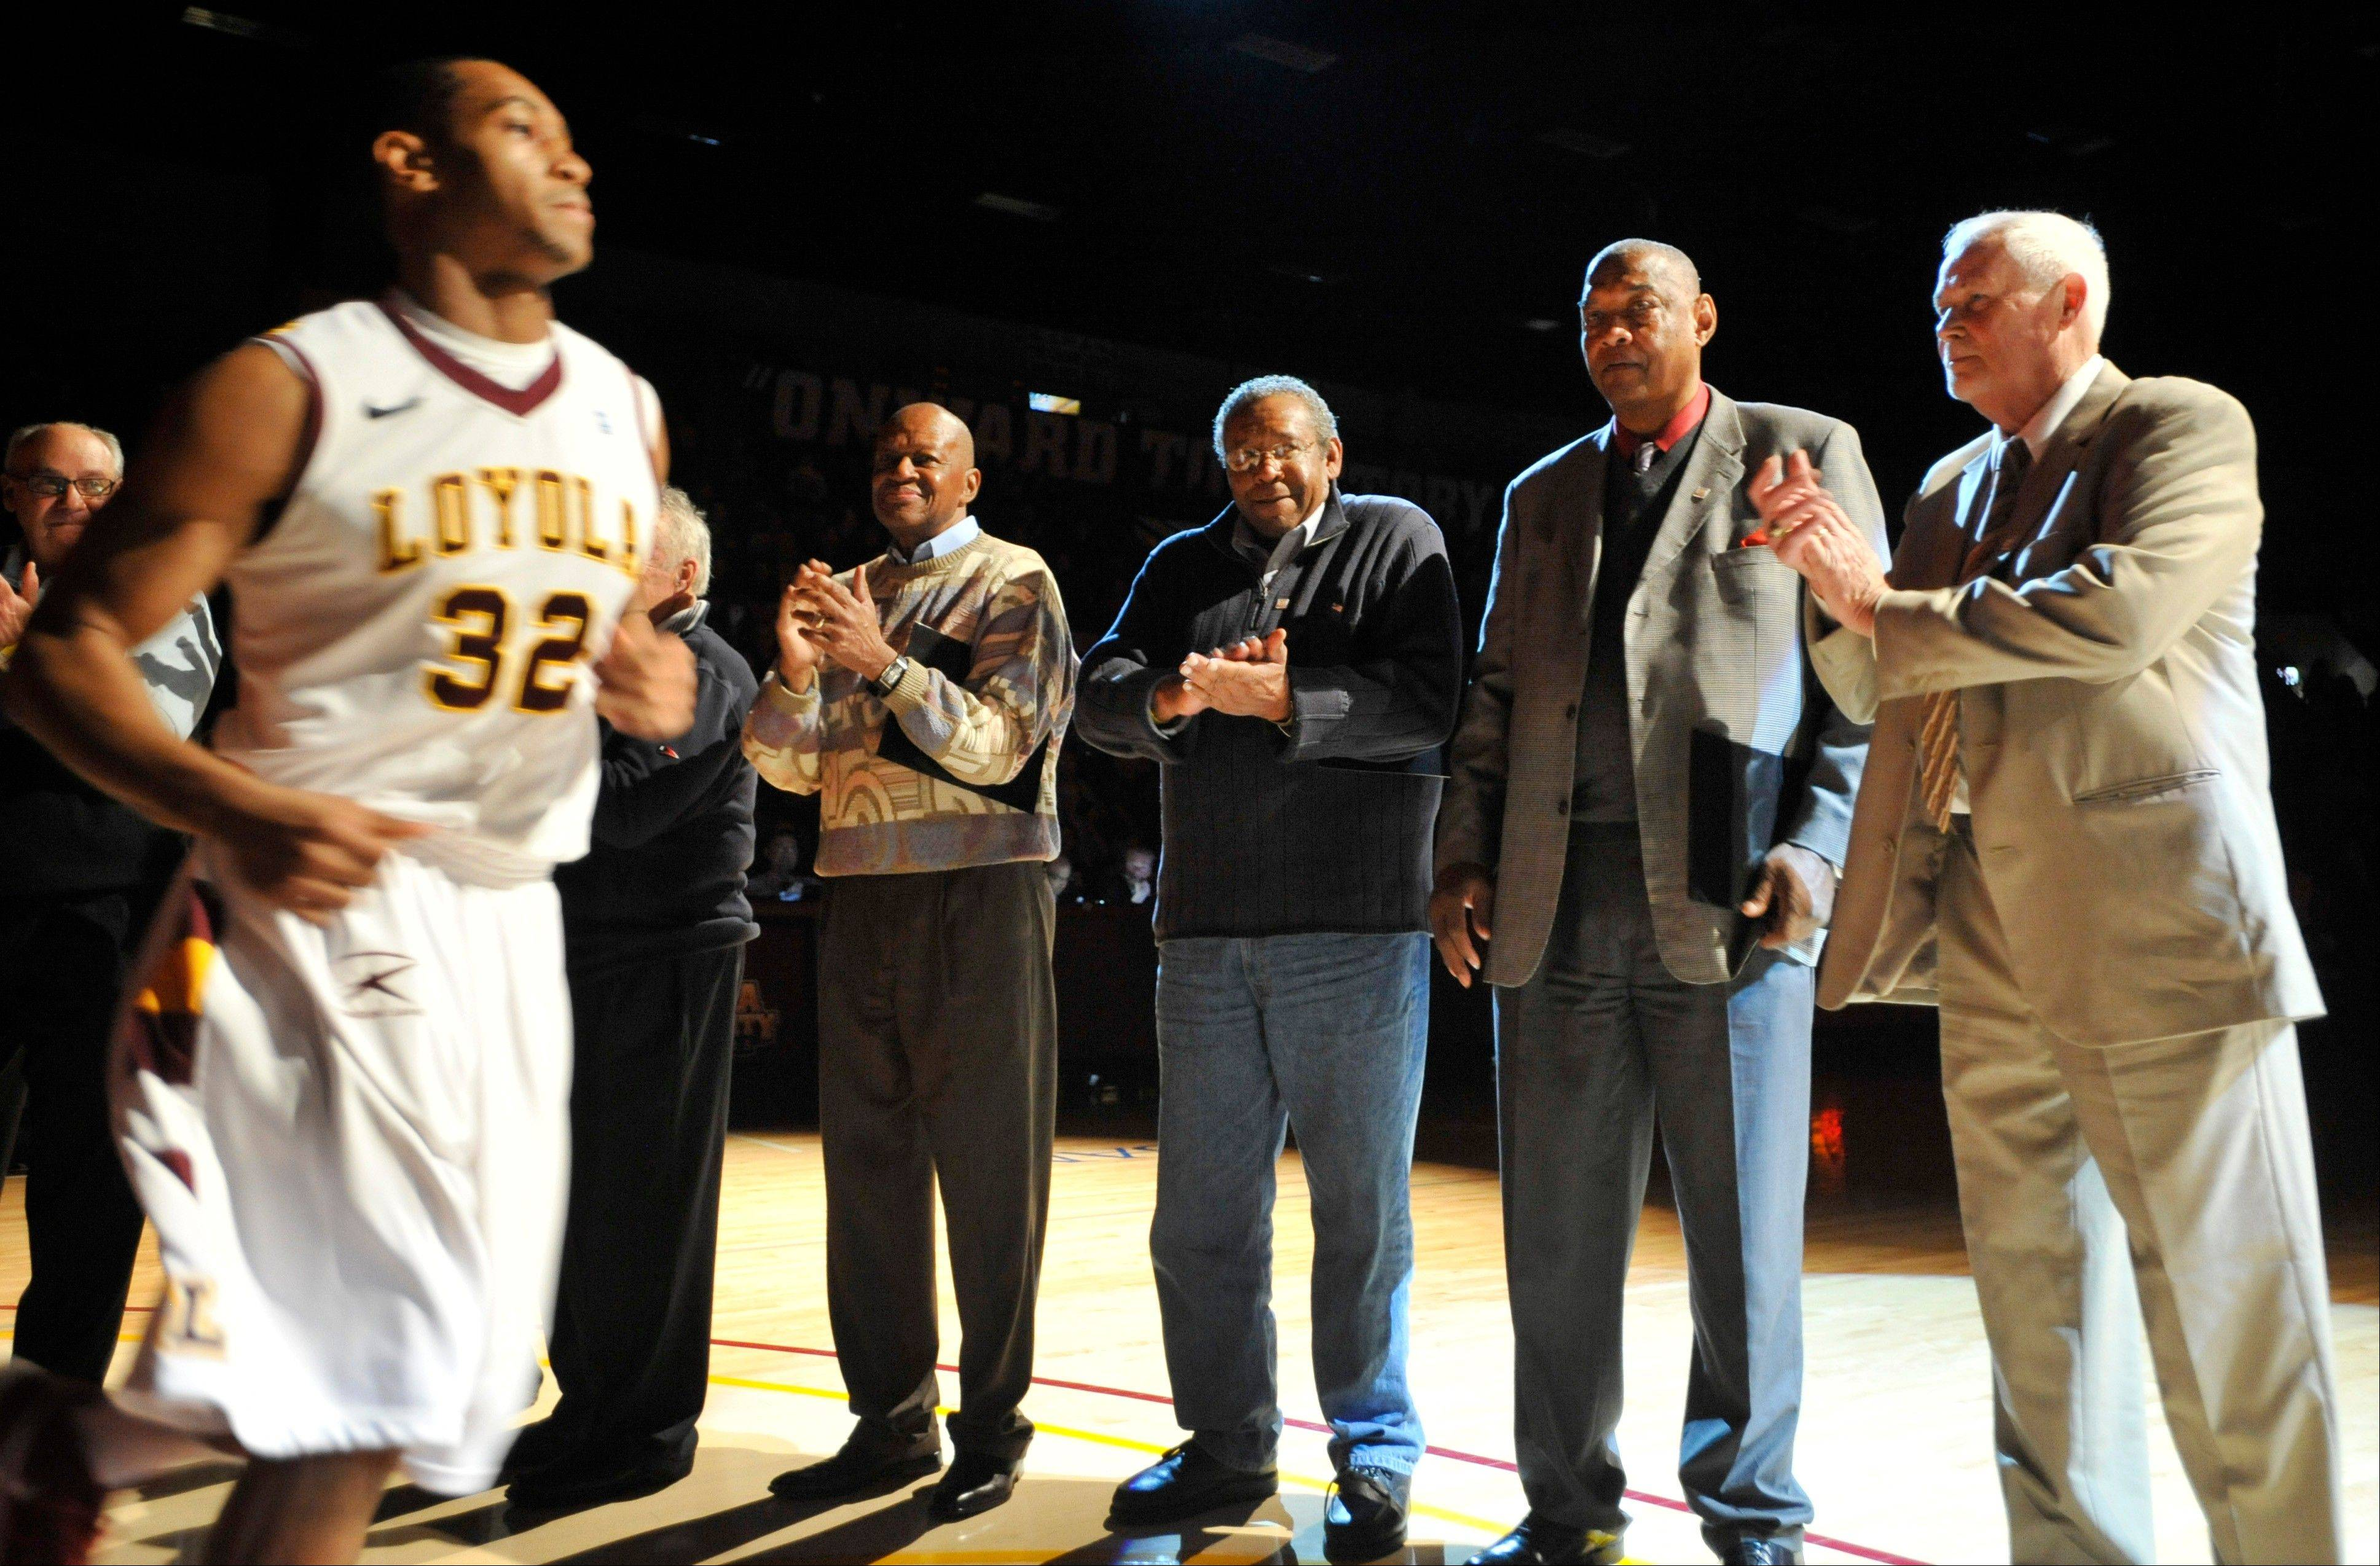 Members of the 1963 Loyola NCAA men's basketball championship team cheer on current Loyola player Christian Thomas (32) as he is announced before game between Loyola and Mississippi State last December. The 1963 Loyola team is being inducted into the National Collegiate Basketball Hall of Fame.